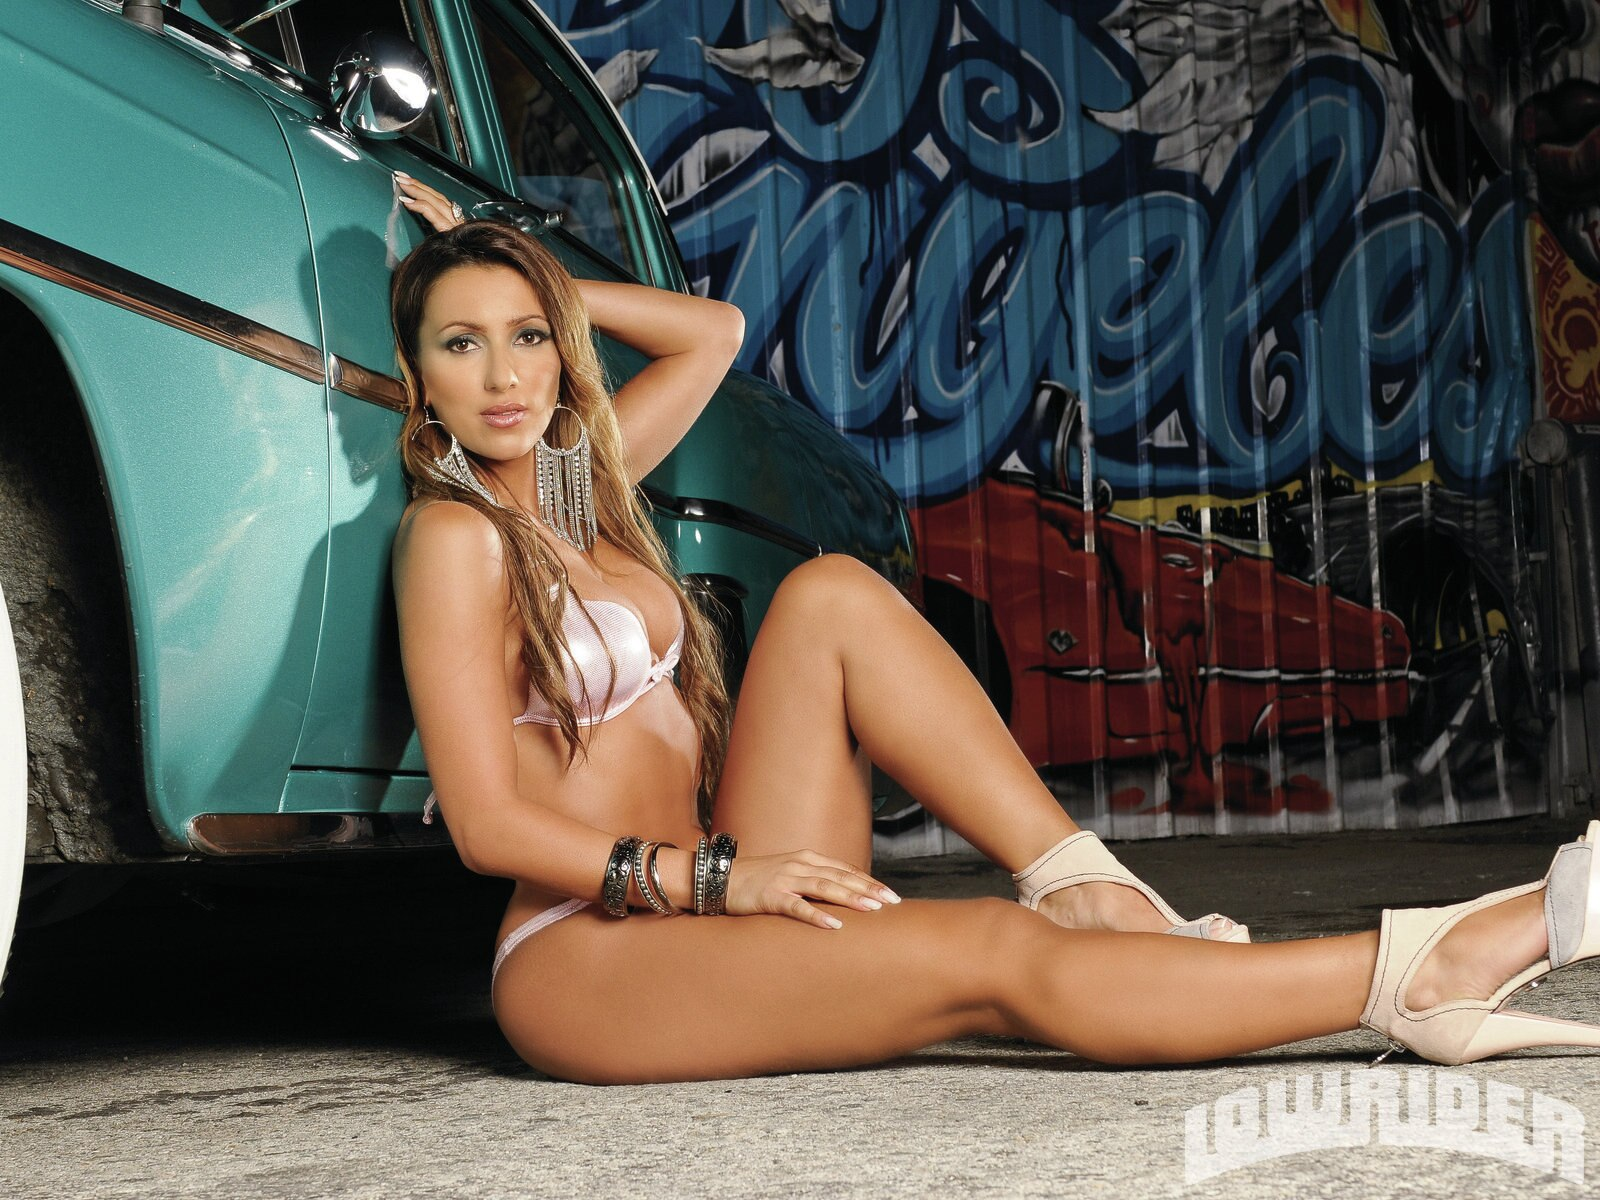 1103-lrms-01-o-metisha-lowrider-girls-model-2